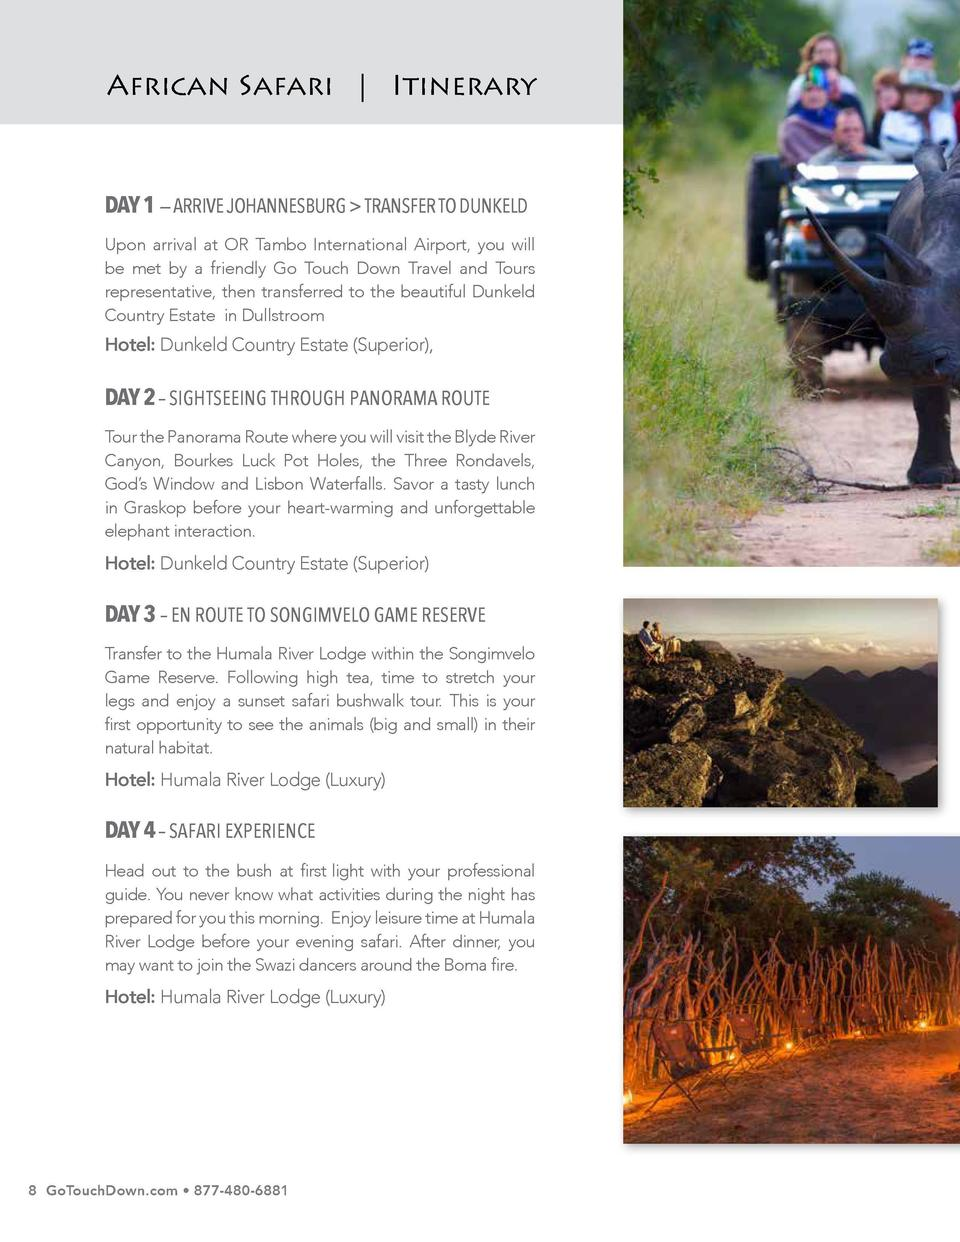 African Safari   Itinerary  7 Nights   8 Days  DAY 1     ARRIVE JOHANNESBURG   TRANSFER TO DUNKELD  DAY 5     SAFARI EXPER...